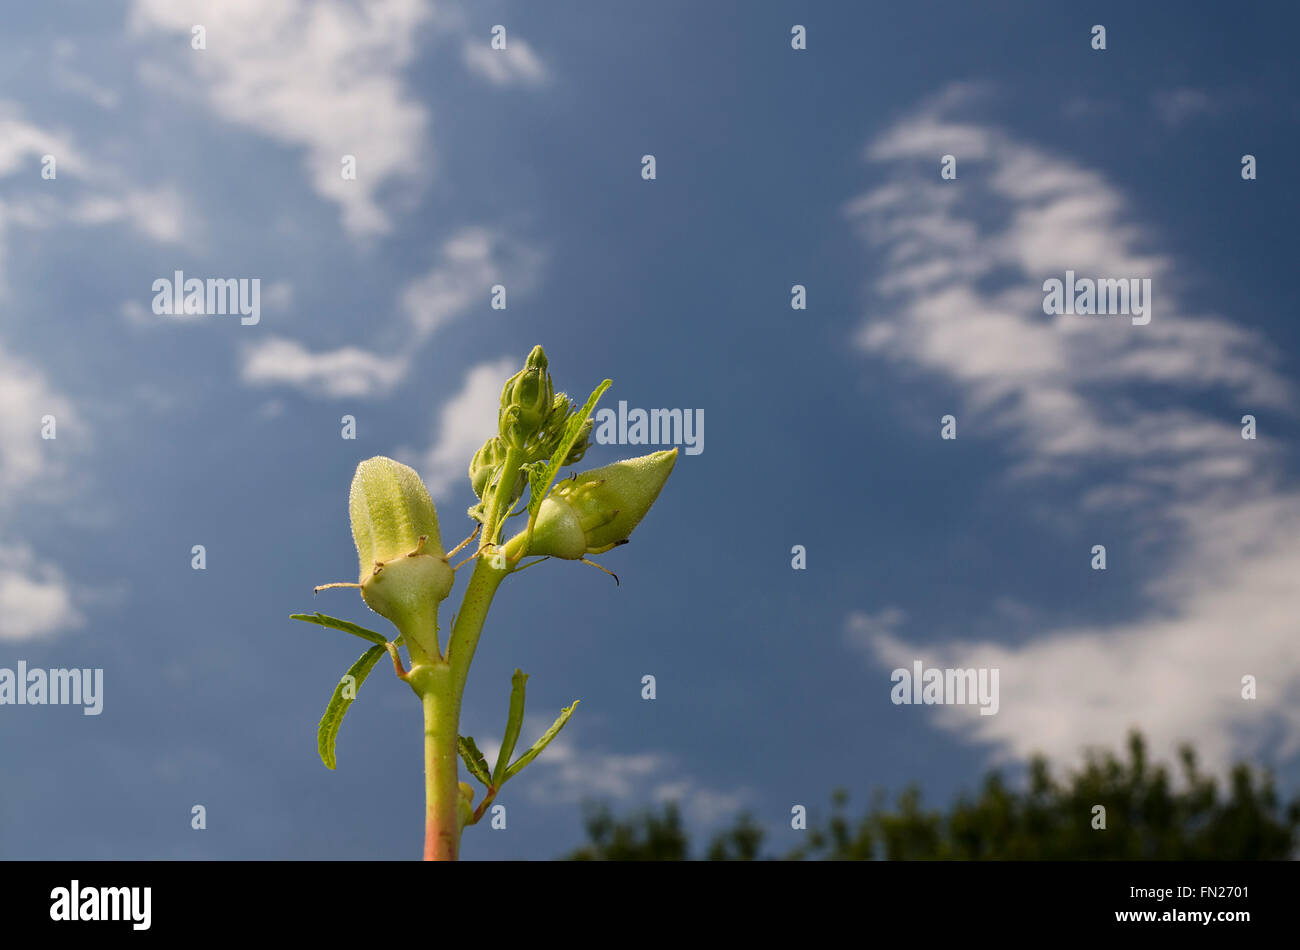 Okra or Gumbo, variety of herb green bloom on the sky - Stock Image